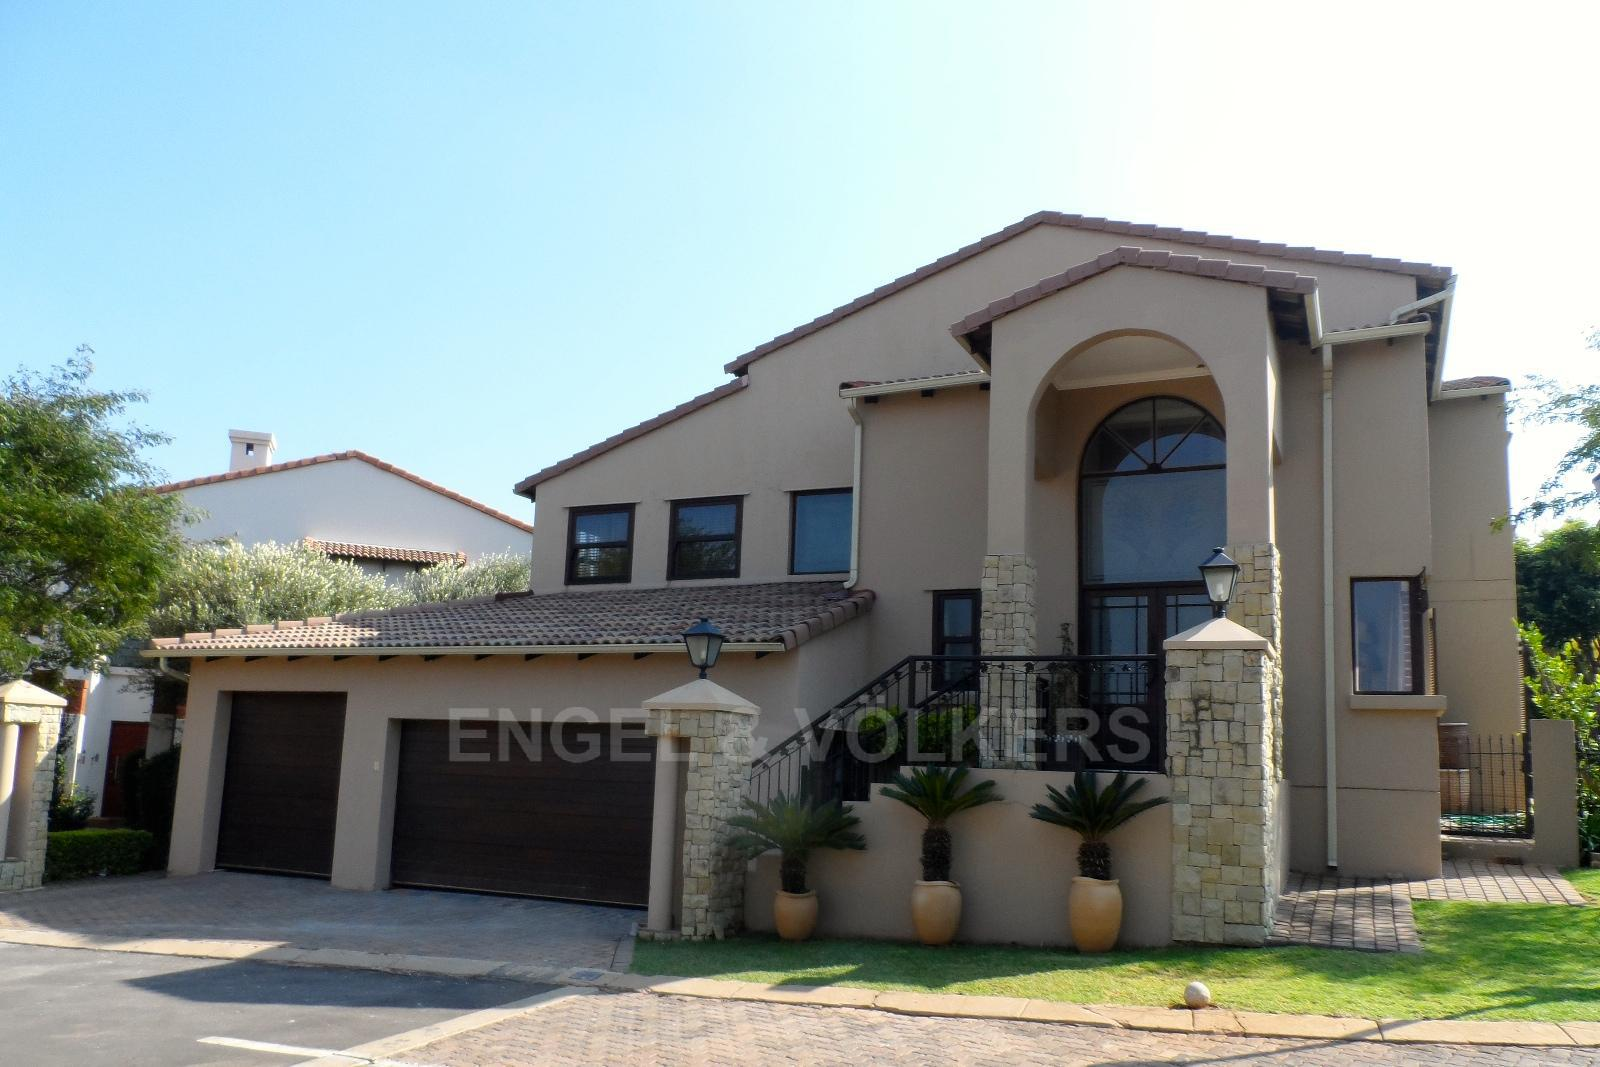 Pretoria, Sterrewag Property  | Houses For Sale Sterrewag, STERREWAG, House 3 bedrooms property for sale Price:4,900,000